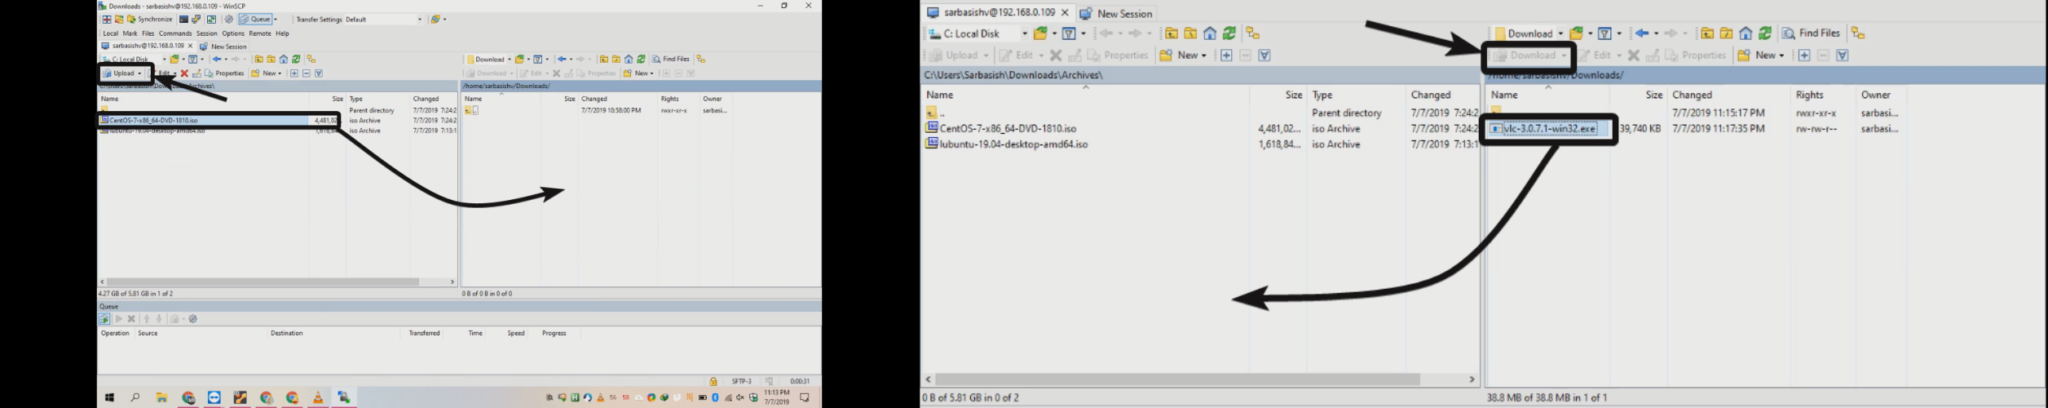 WinSCP for file transfer 7 8